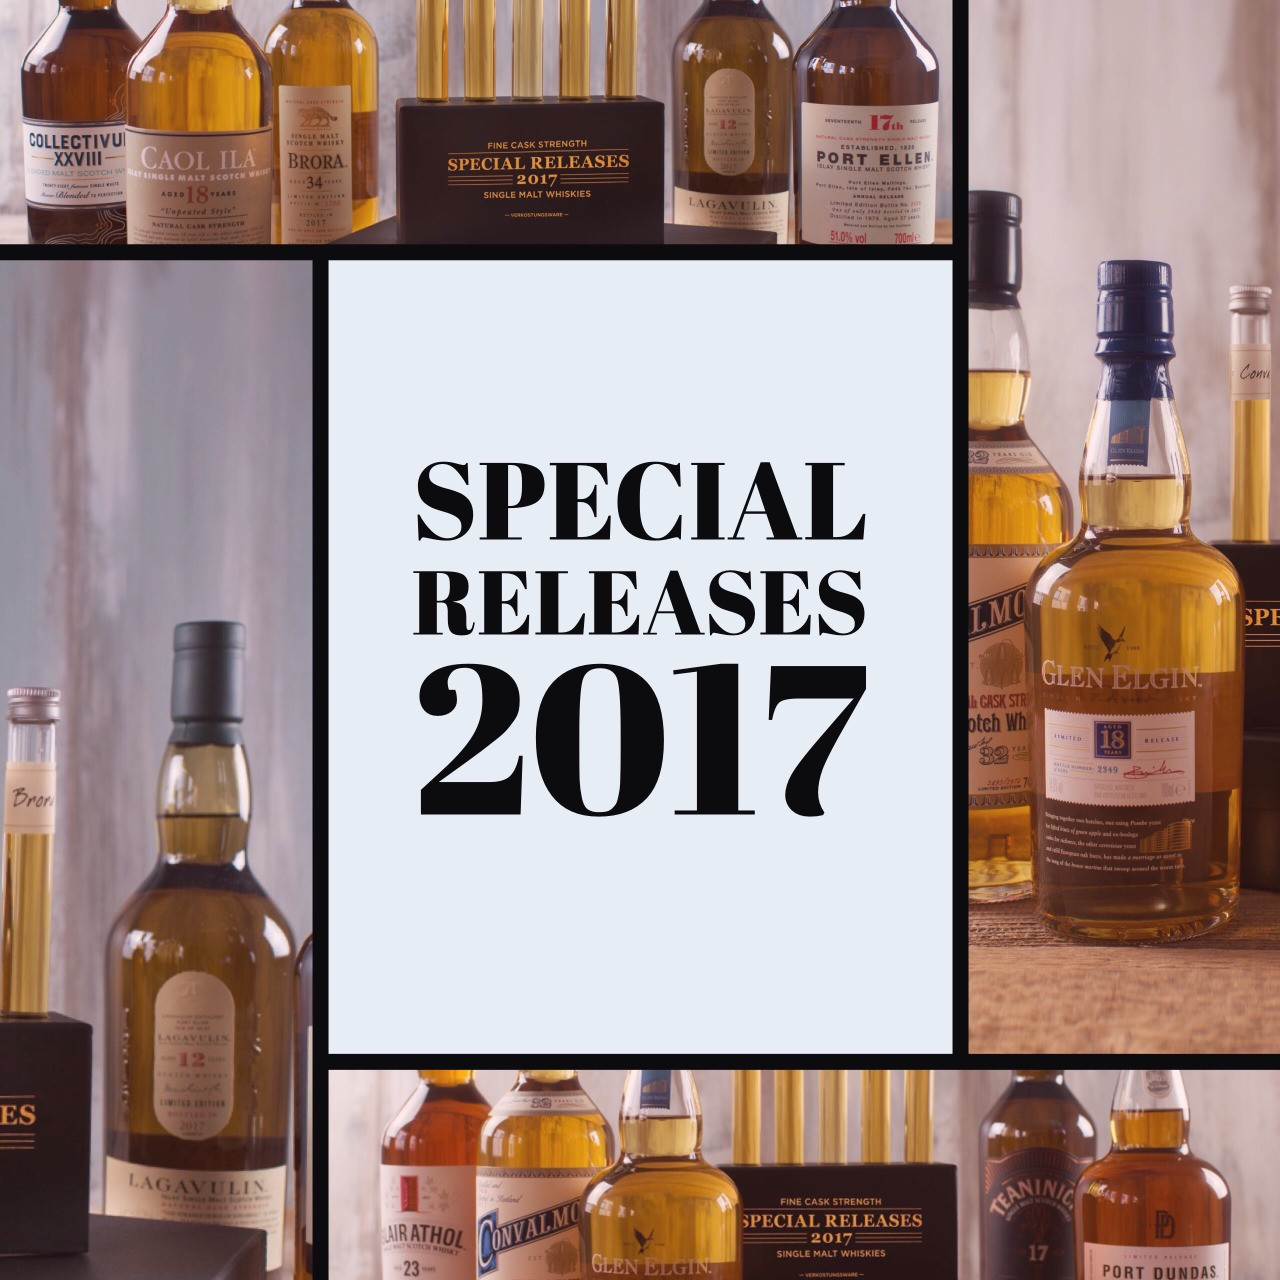 #Special Releases 2017